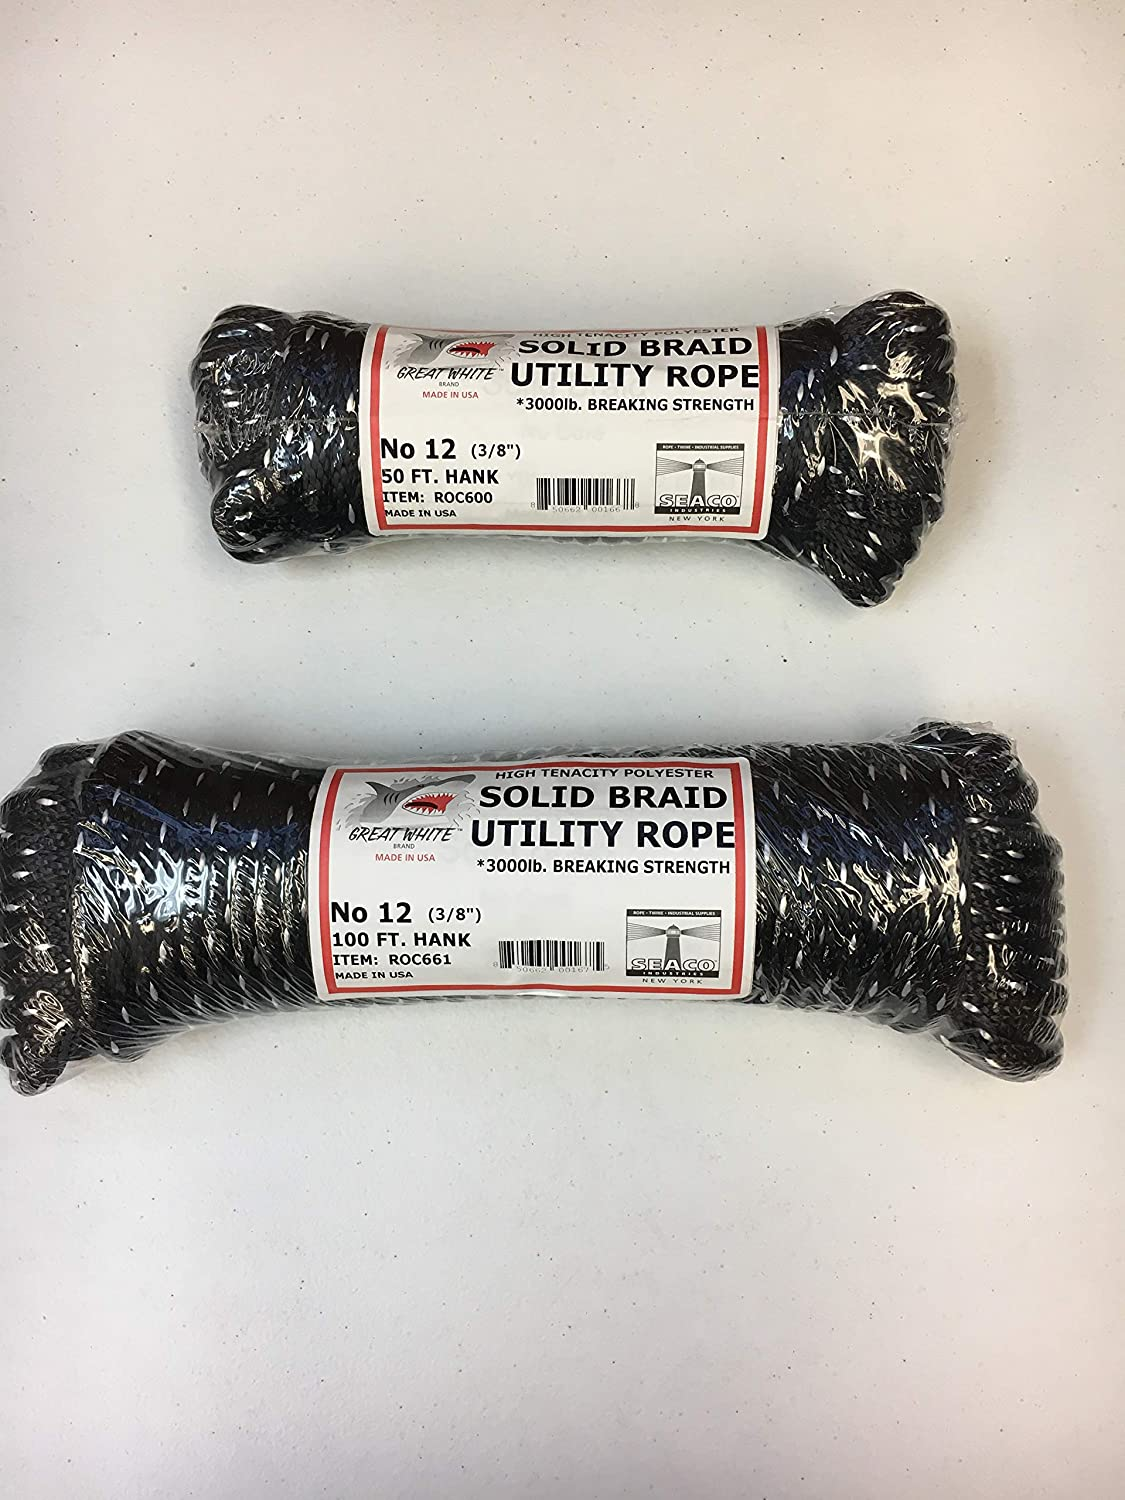 """Utility Rope, Utility Cord, Solid Braid 3/8"""" X 50 ft, Premium HIGH Tenacity Black w/White, 3, 000lb. TENSILE Strength, Tow-Derby-EQUSTRAIN-Indoor-Outdoor-Tow-Pulling-BATTTLE-Jump-Made in USA : Sports & Outdoors"""